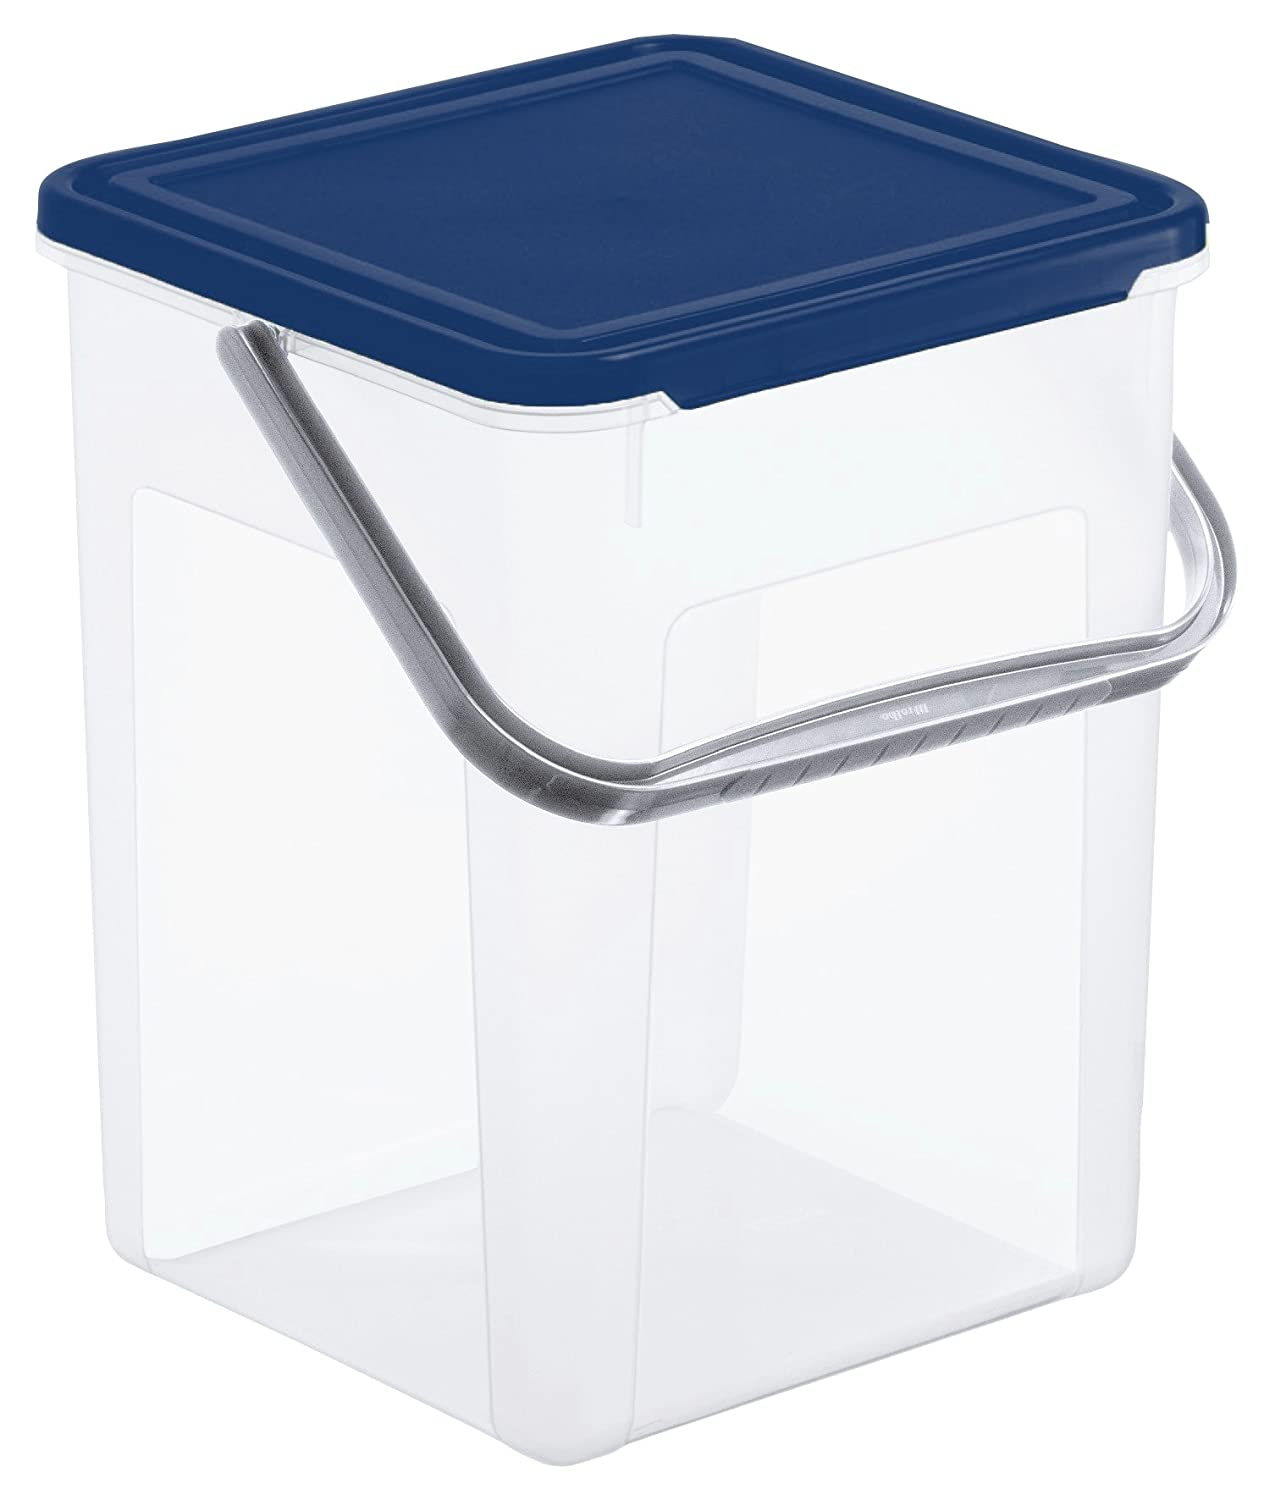 Rotho washing powder storage container Basic 7 l - with hinged lid and handle - suitable for 5 kg of detergent - 23 x 22.5 x 27.5 cm (lxwxh) - transparent/green - plastics (PP) Rotho Kunststoff AG 1770105519